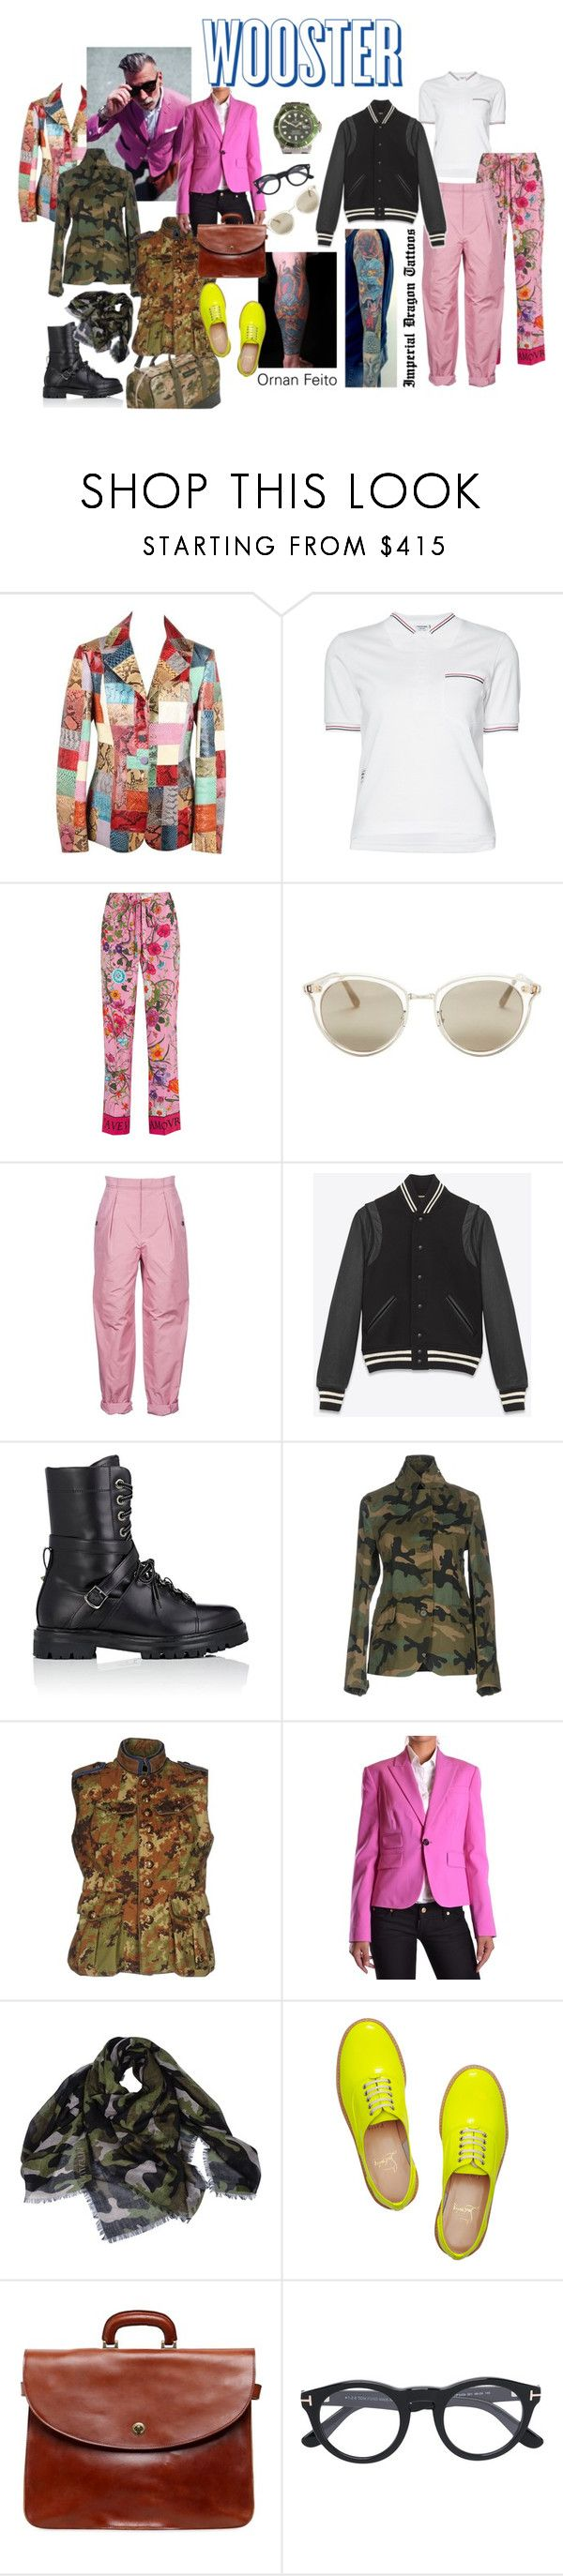 """""""Style Crush: Nick Wooster"""" by marilyn-montoto ❤ liked on Polyvore featuring Roberto Cavalli, Thom Browne, Gucci, Oliver Peoples, Bottega Veneta, Yves Saint Laurent, Valentino, Dsquared2, Christian Louboutin and Officine Creative"""